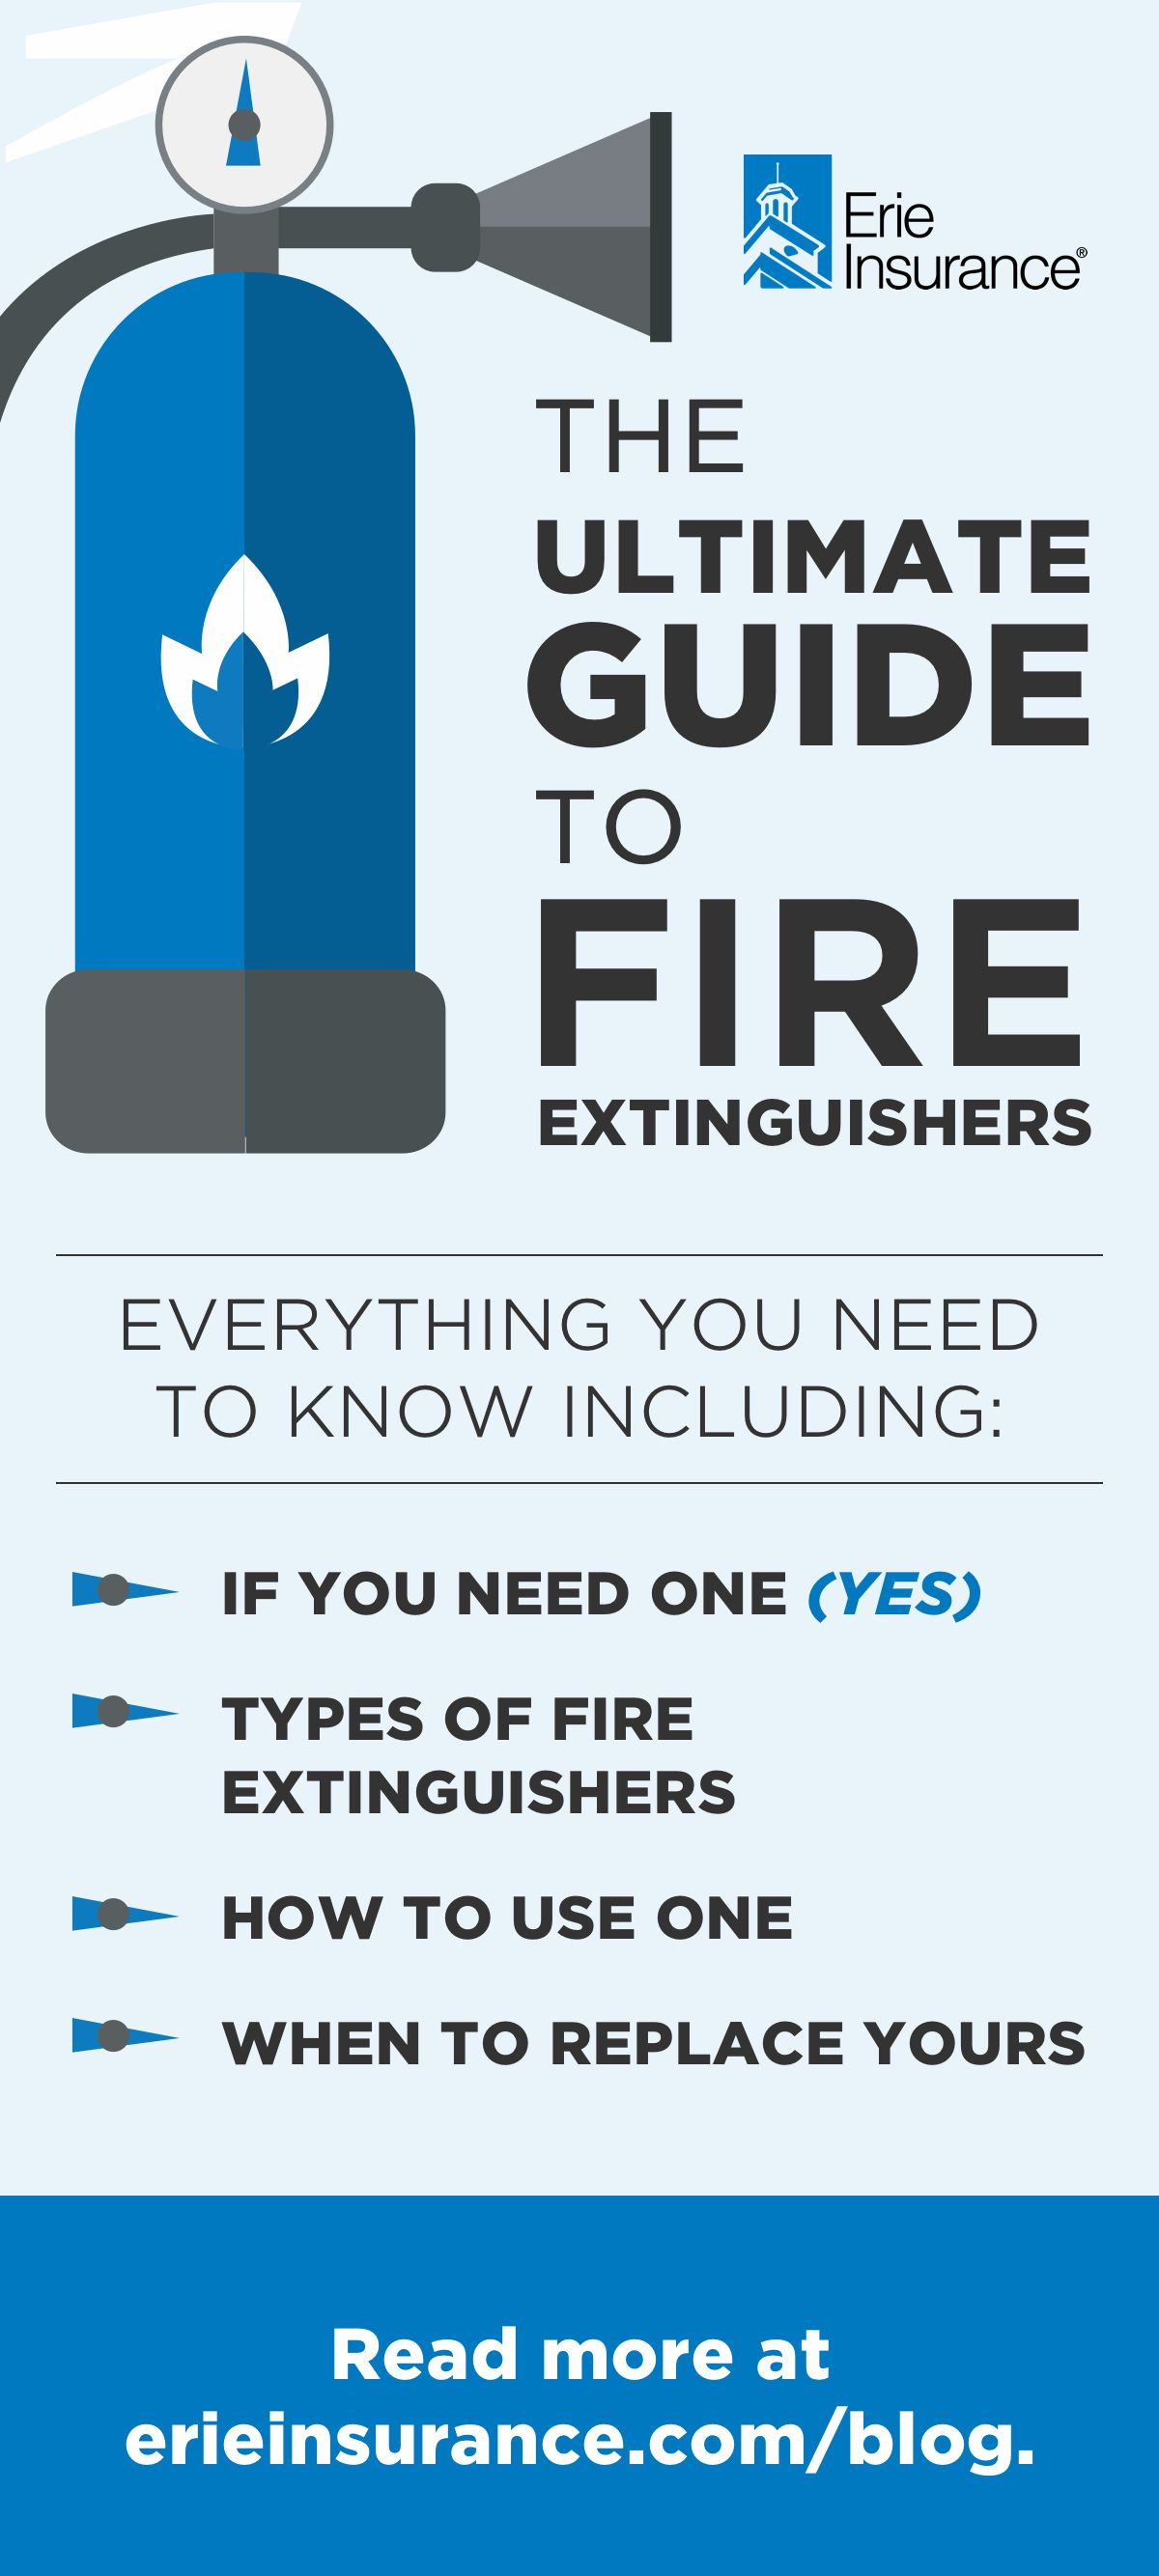 The Ultimate Guide To Fire Extinguishers Fire Extinguisher